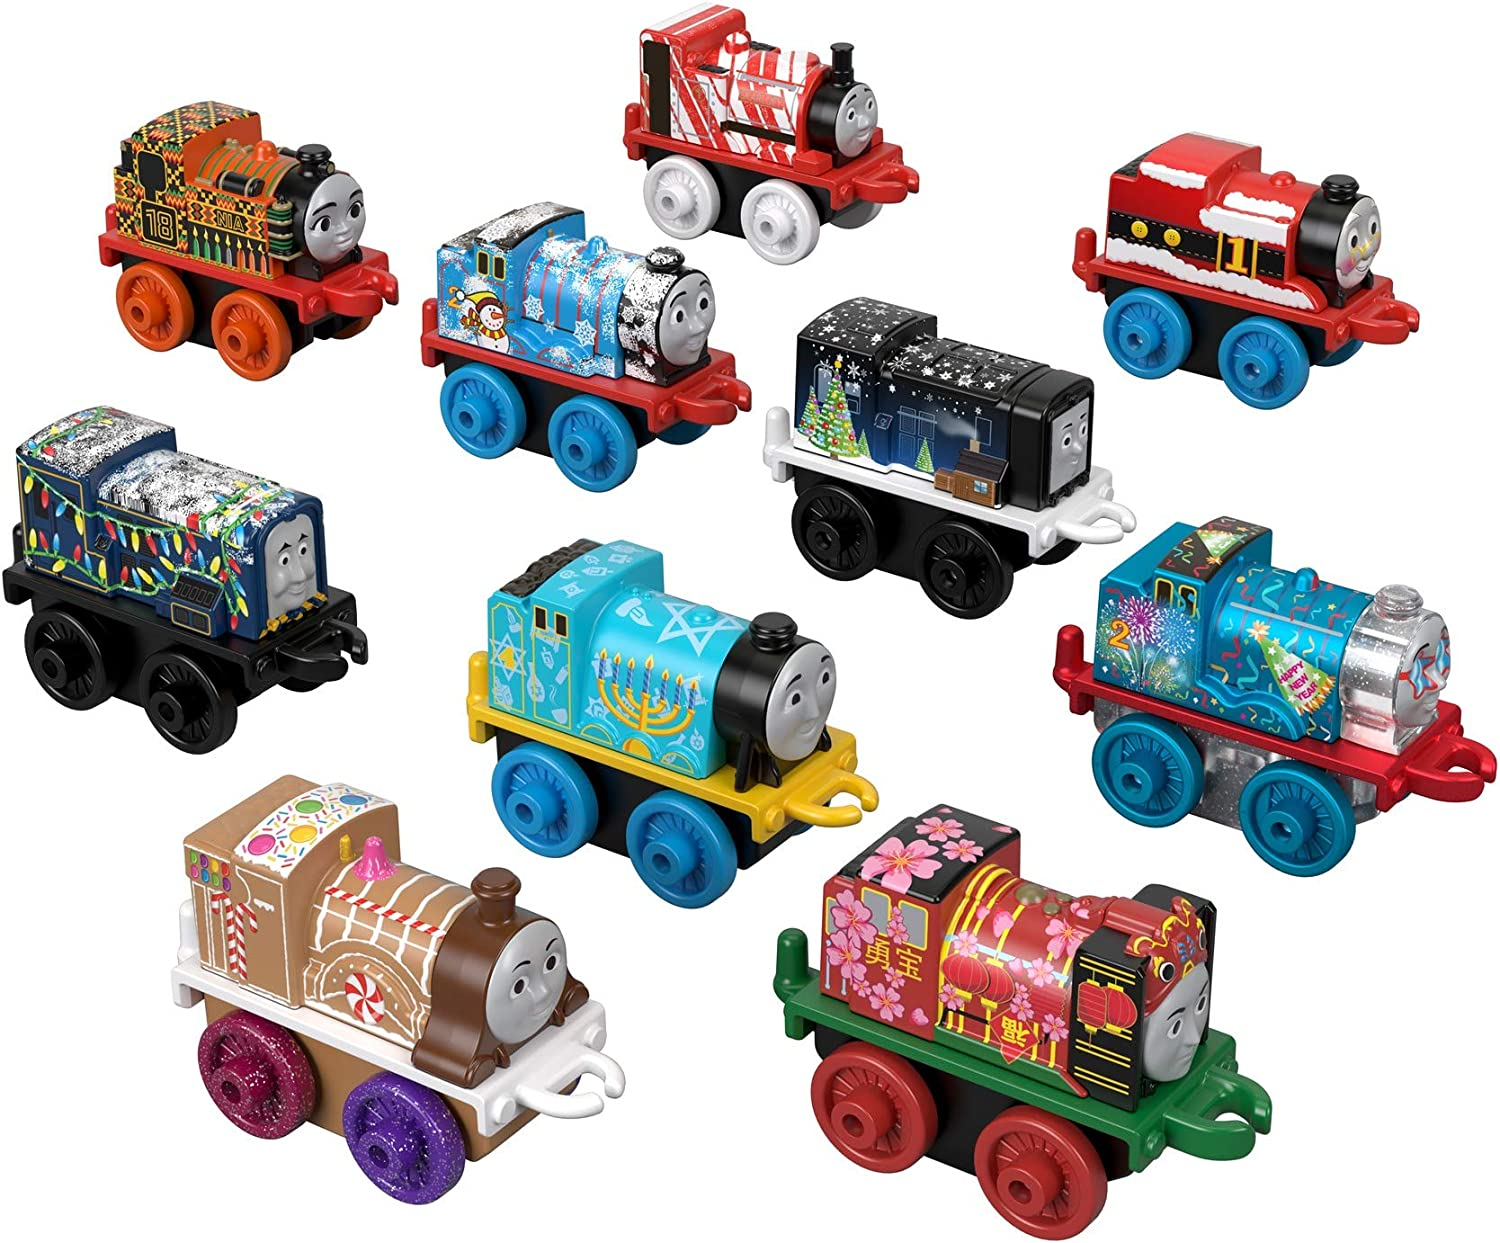 Thomas And Friends Minis 2020 Christmas Minis Amazon.com: Fisher Price Thomas & Friends MINIS Themed, 10 Pack